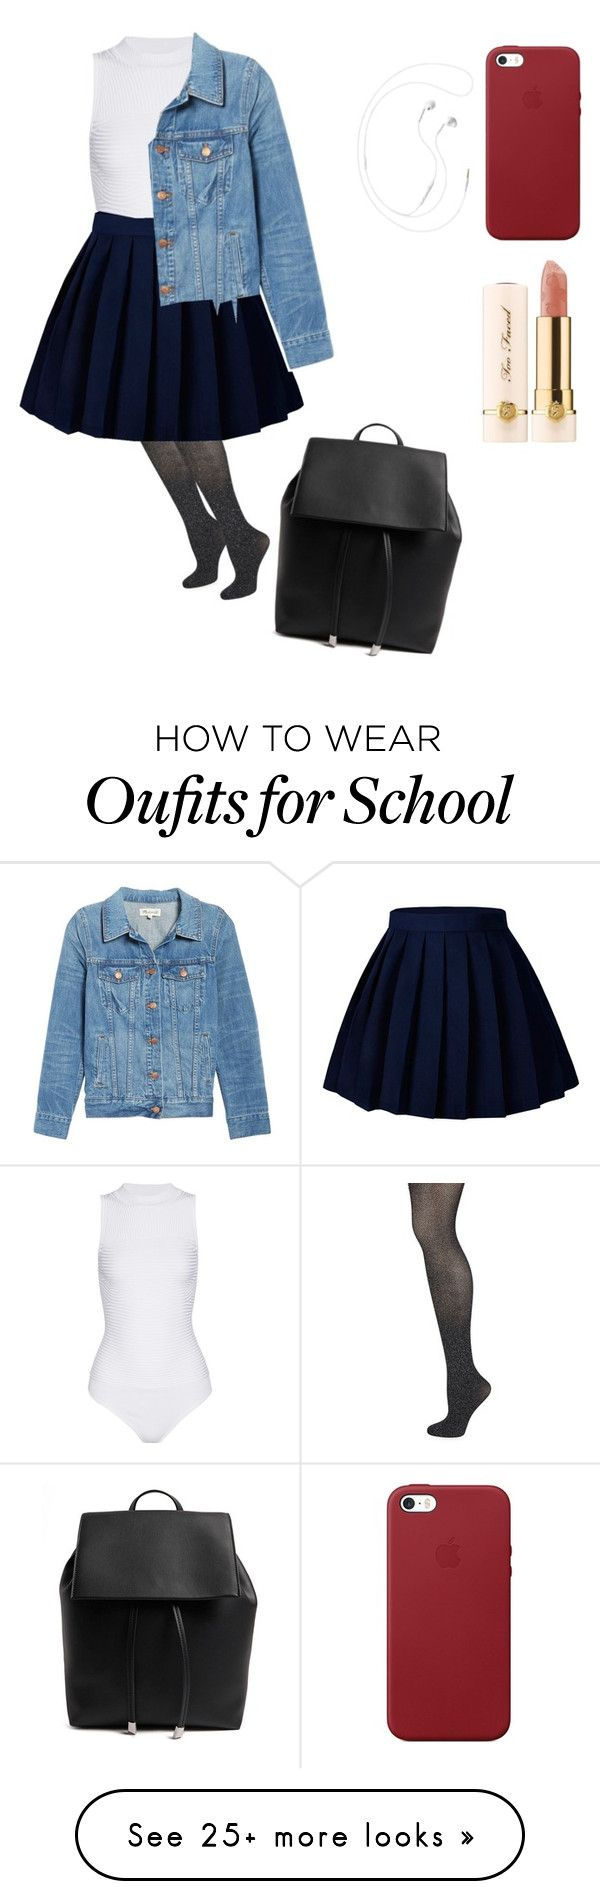 """"" by mpmiley on Polyvore featuring Wolford, Cushnie Et Ochs, Madewell, Forever 21, Apple and Too Faced Cosmetics"